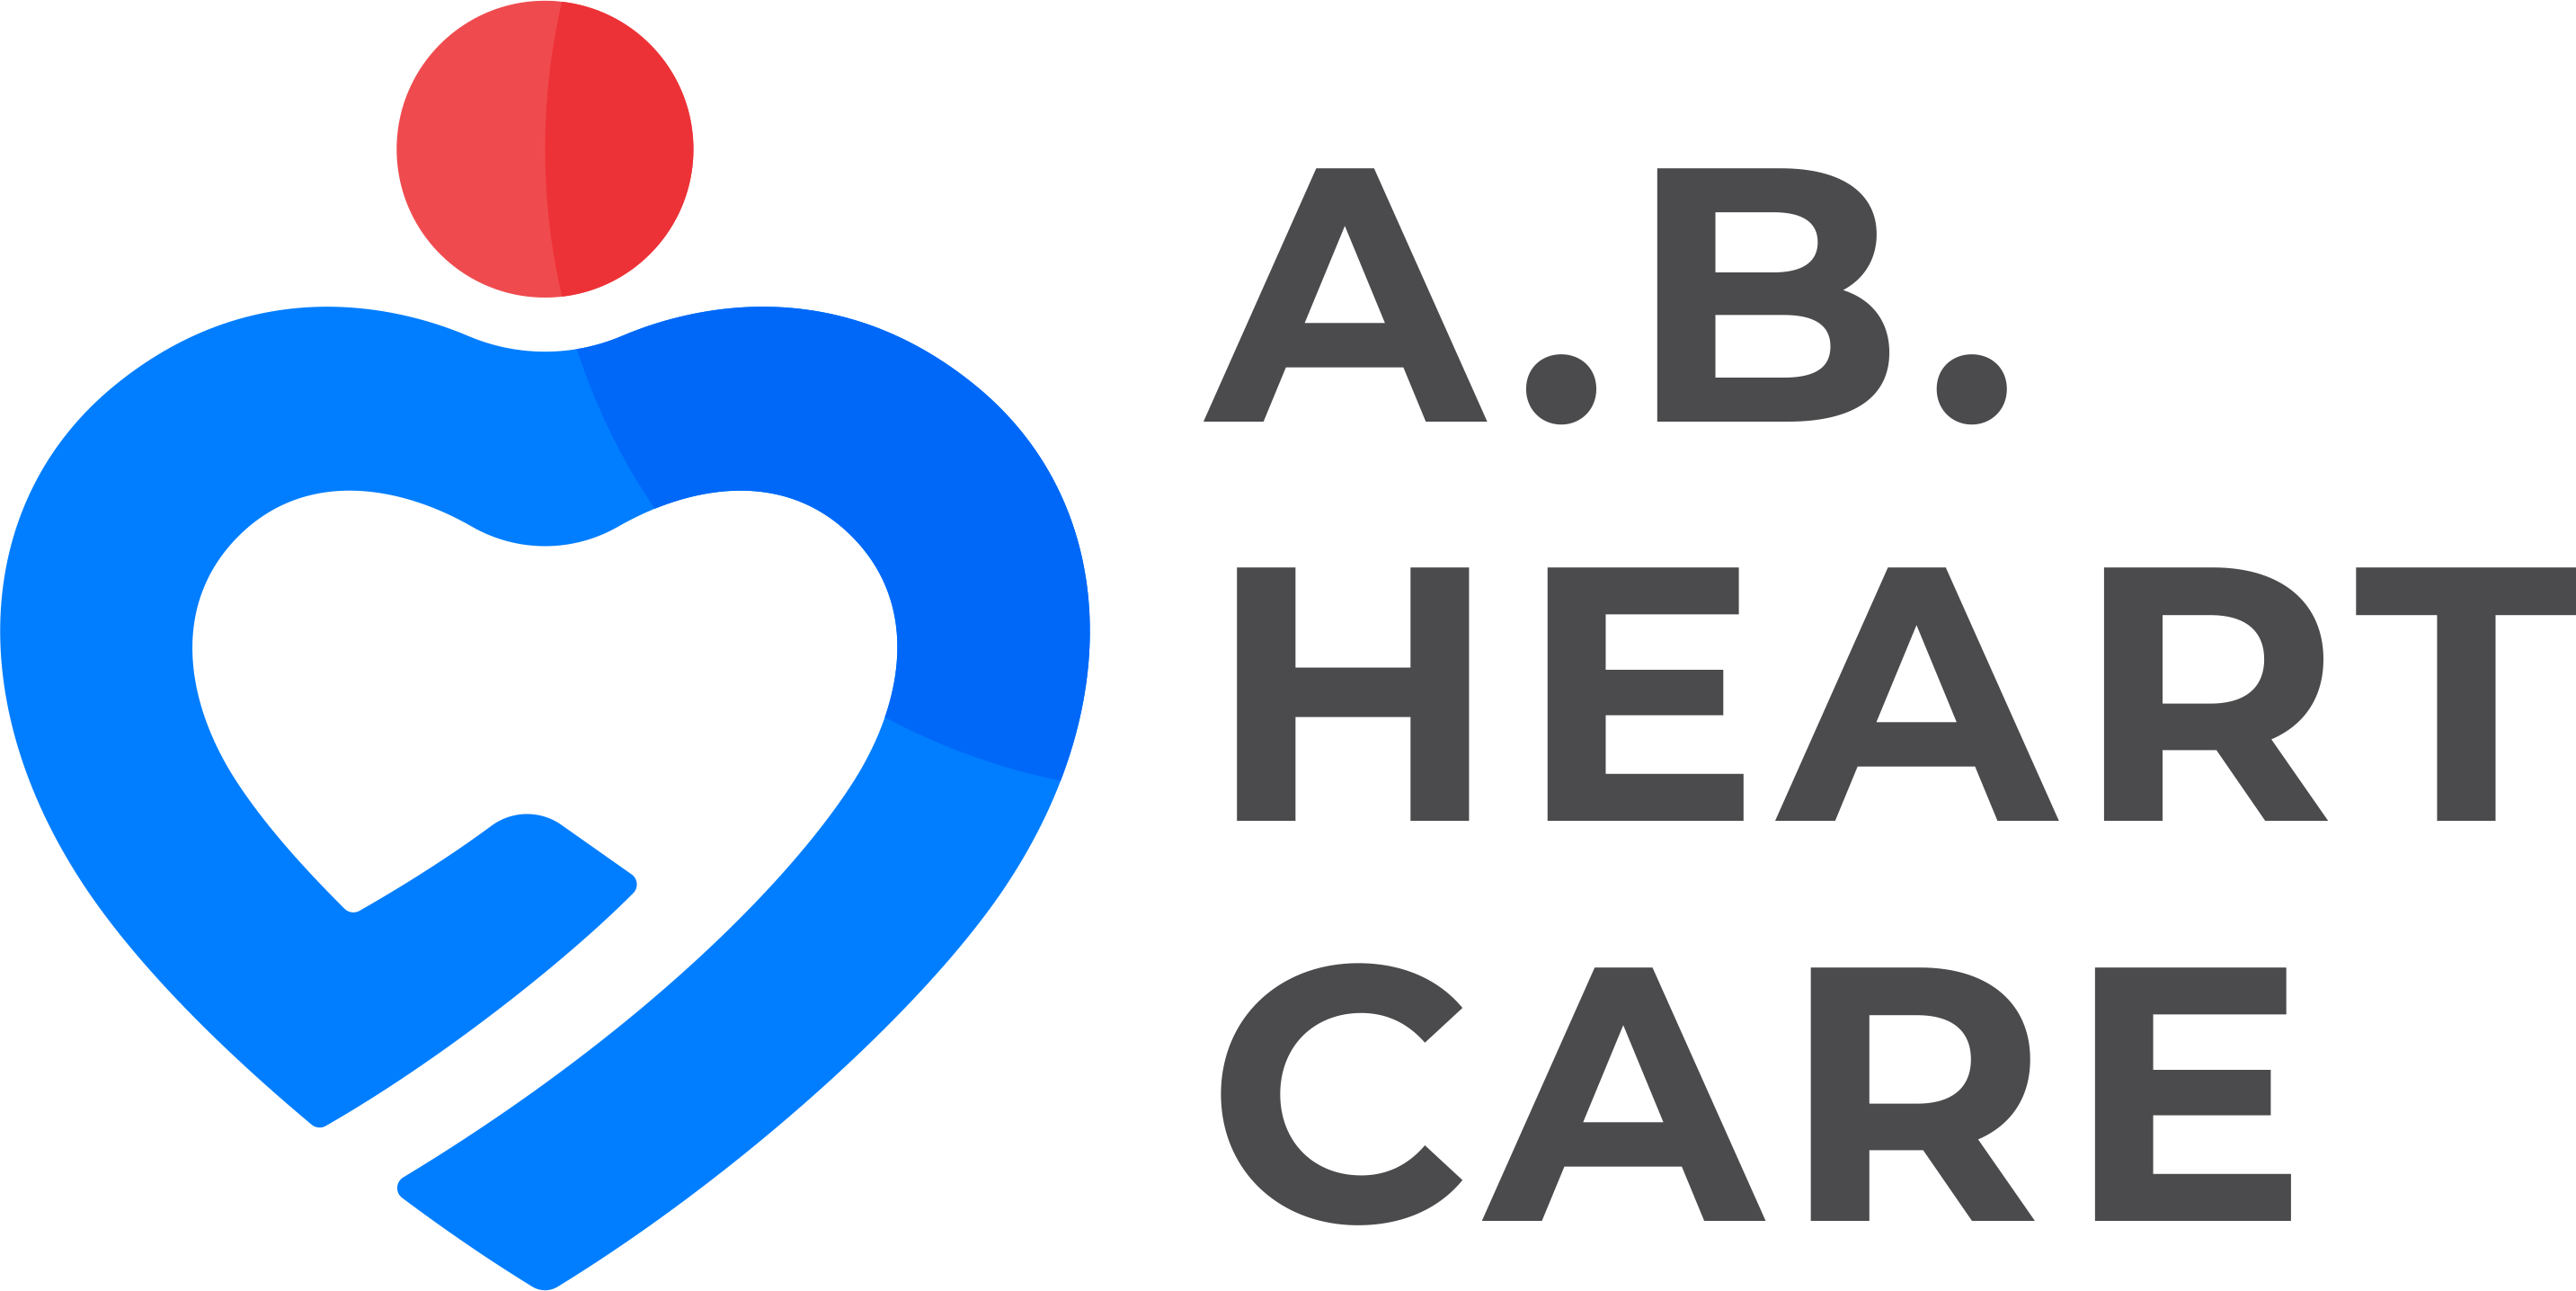 AB heart care logo